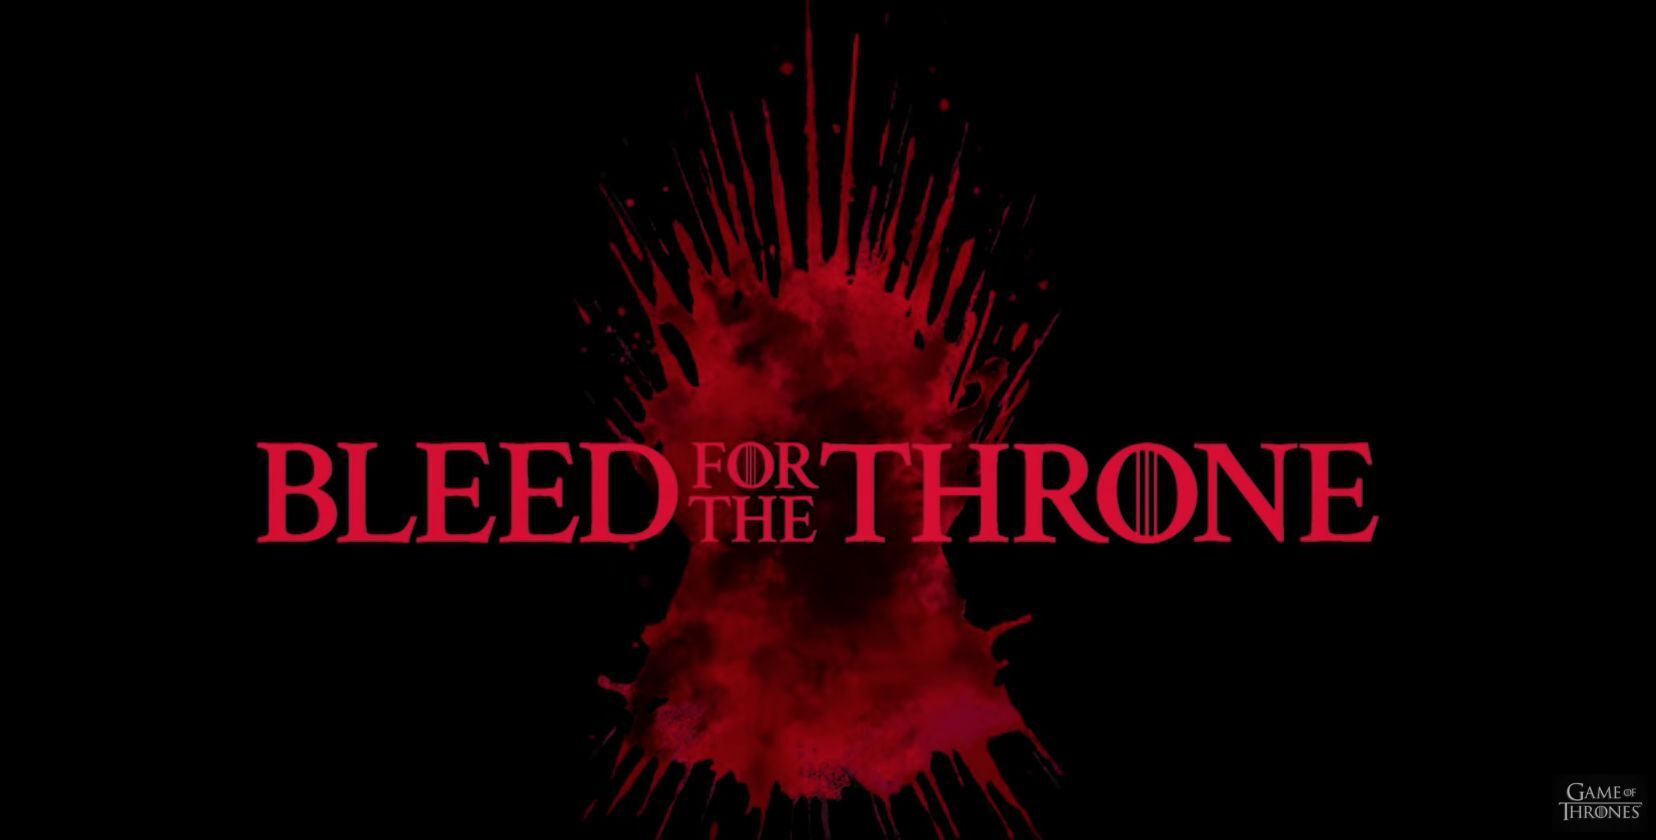 Bleed for the Throne and you win a trip to the season 8 premiere!